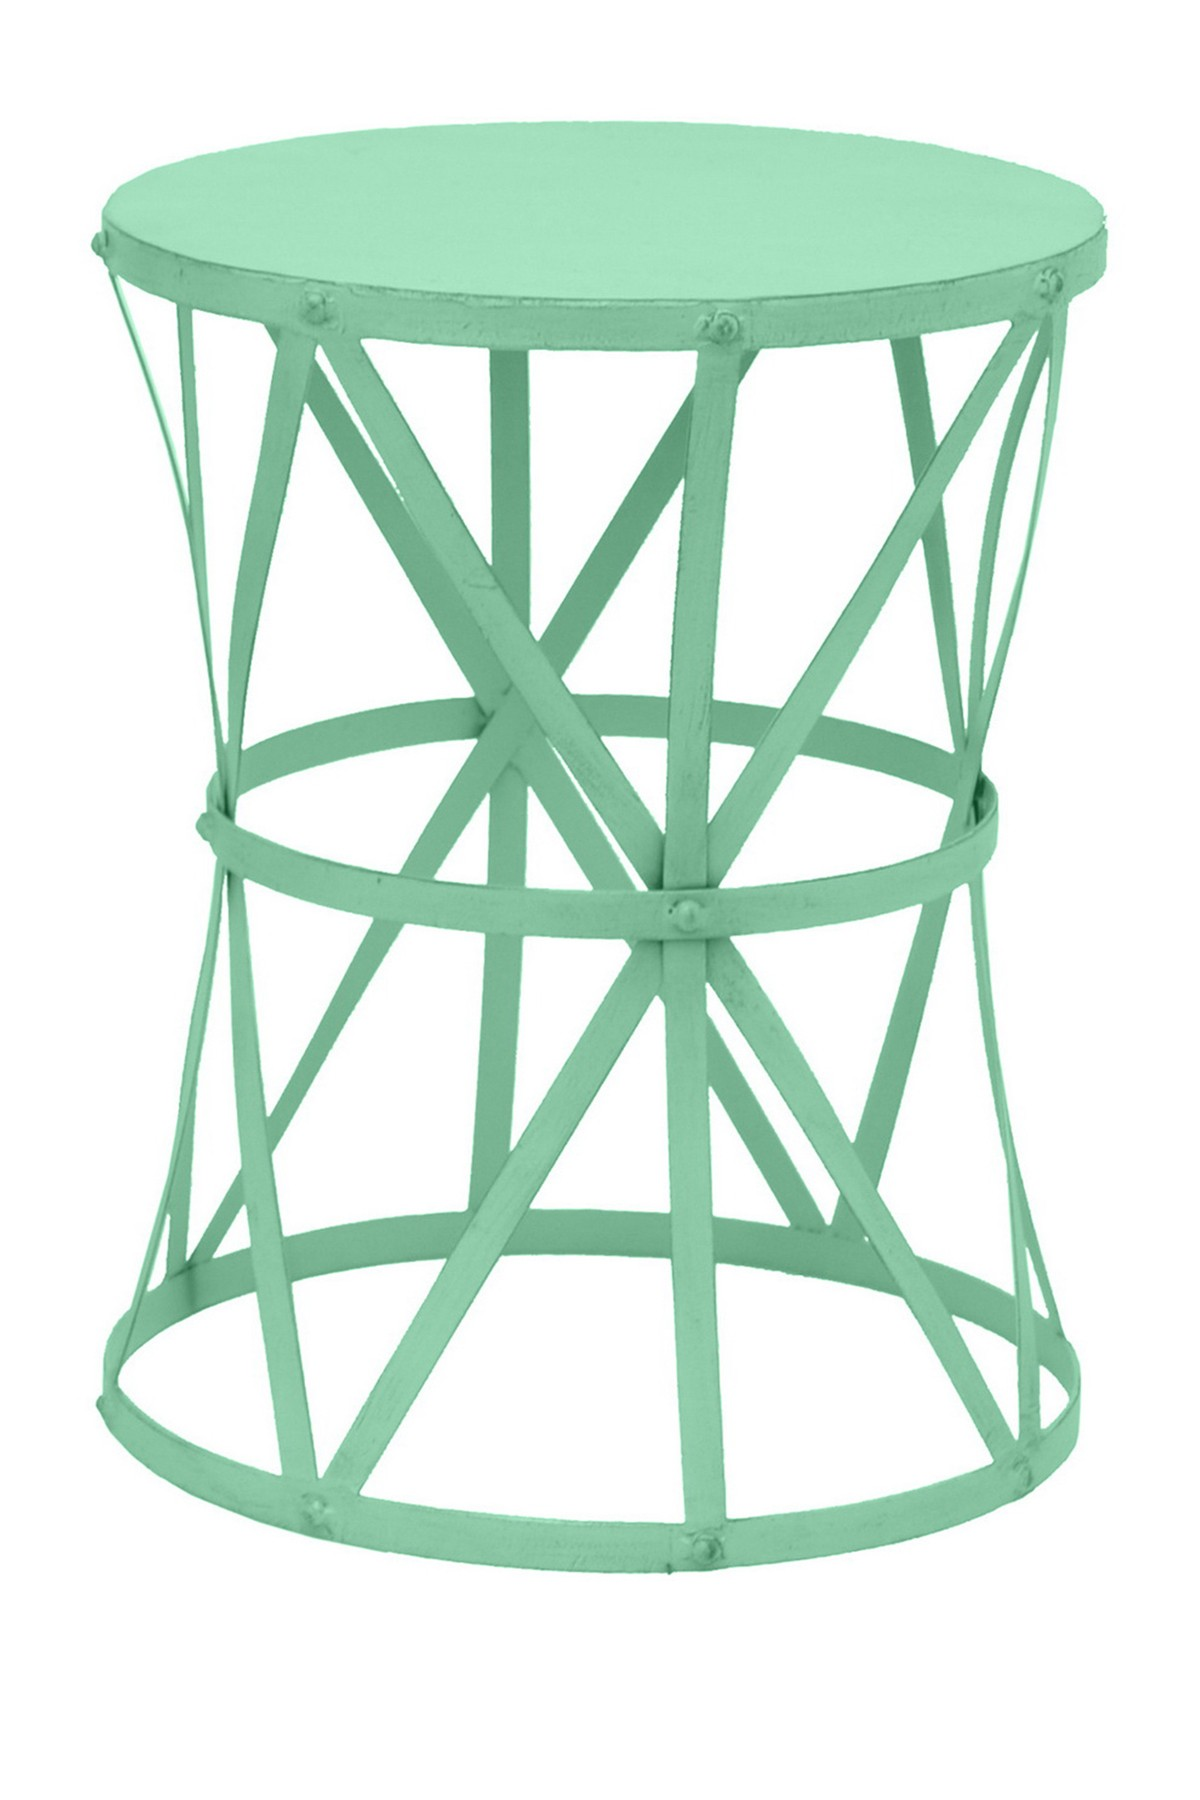 sage target decorative white cabinet glass tables and bench modern kijiji tall accent antique teal colored storage threshold ott living room outdoor green furniture for table full